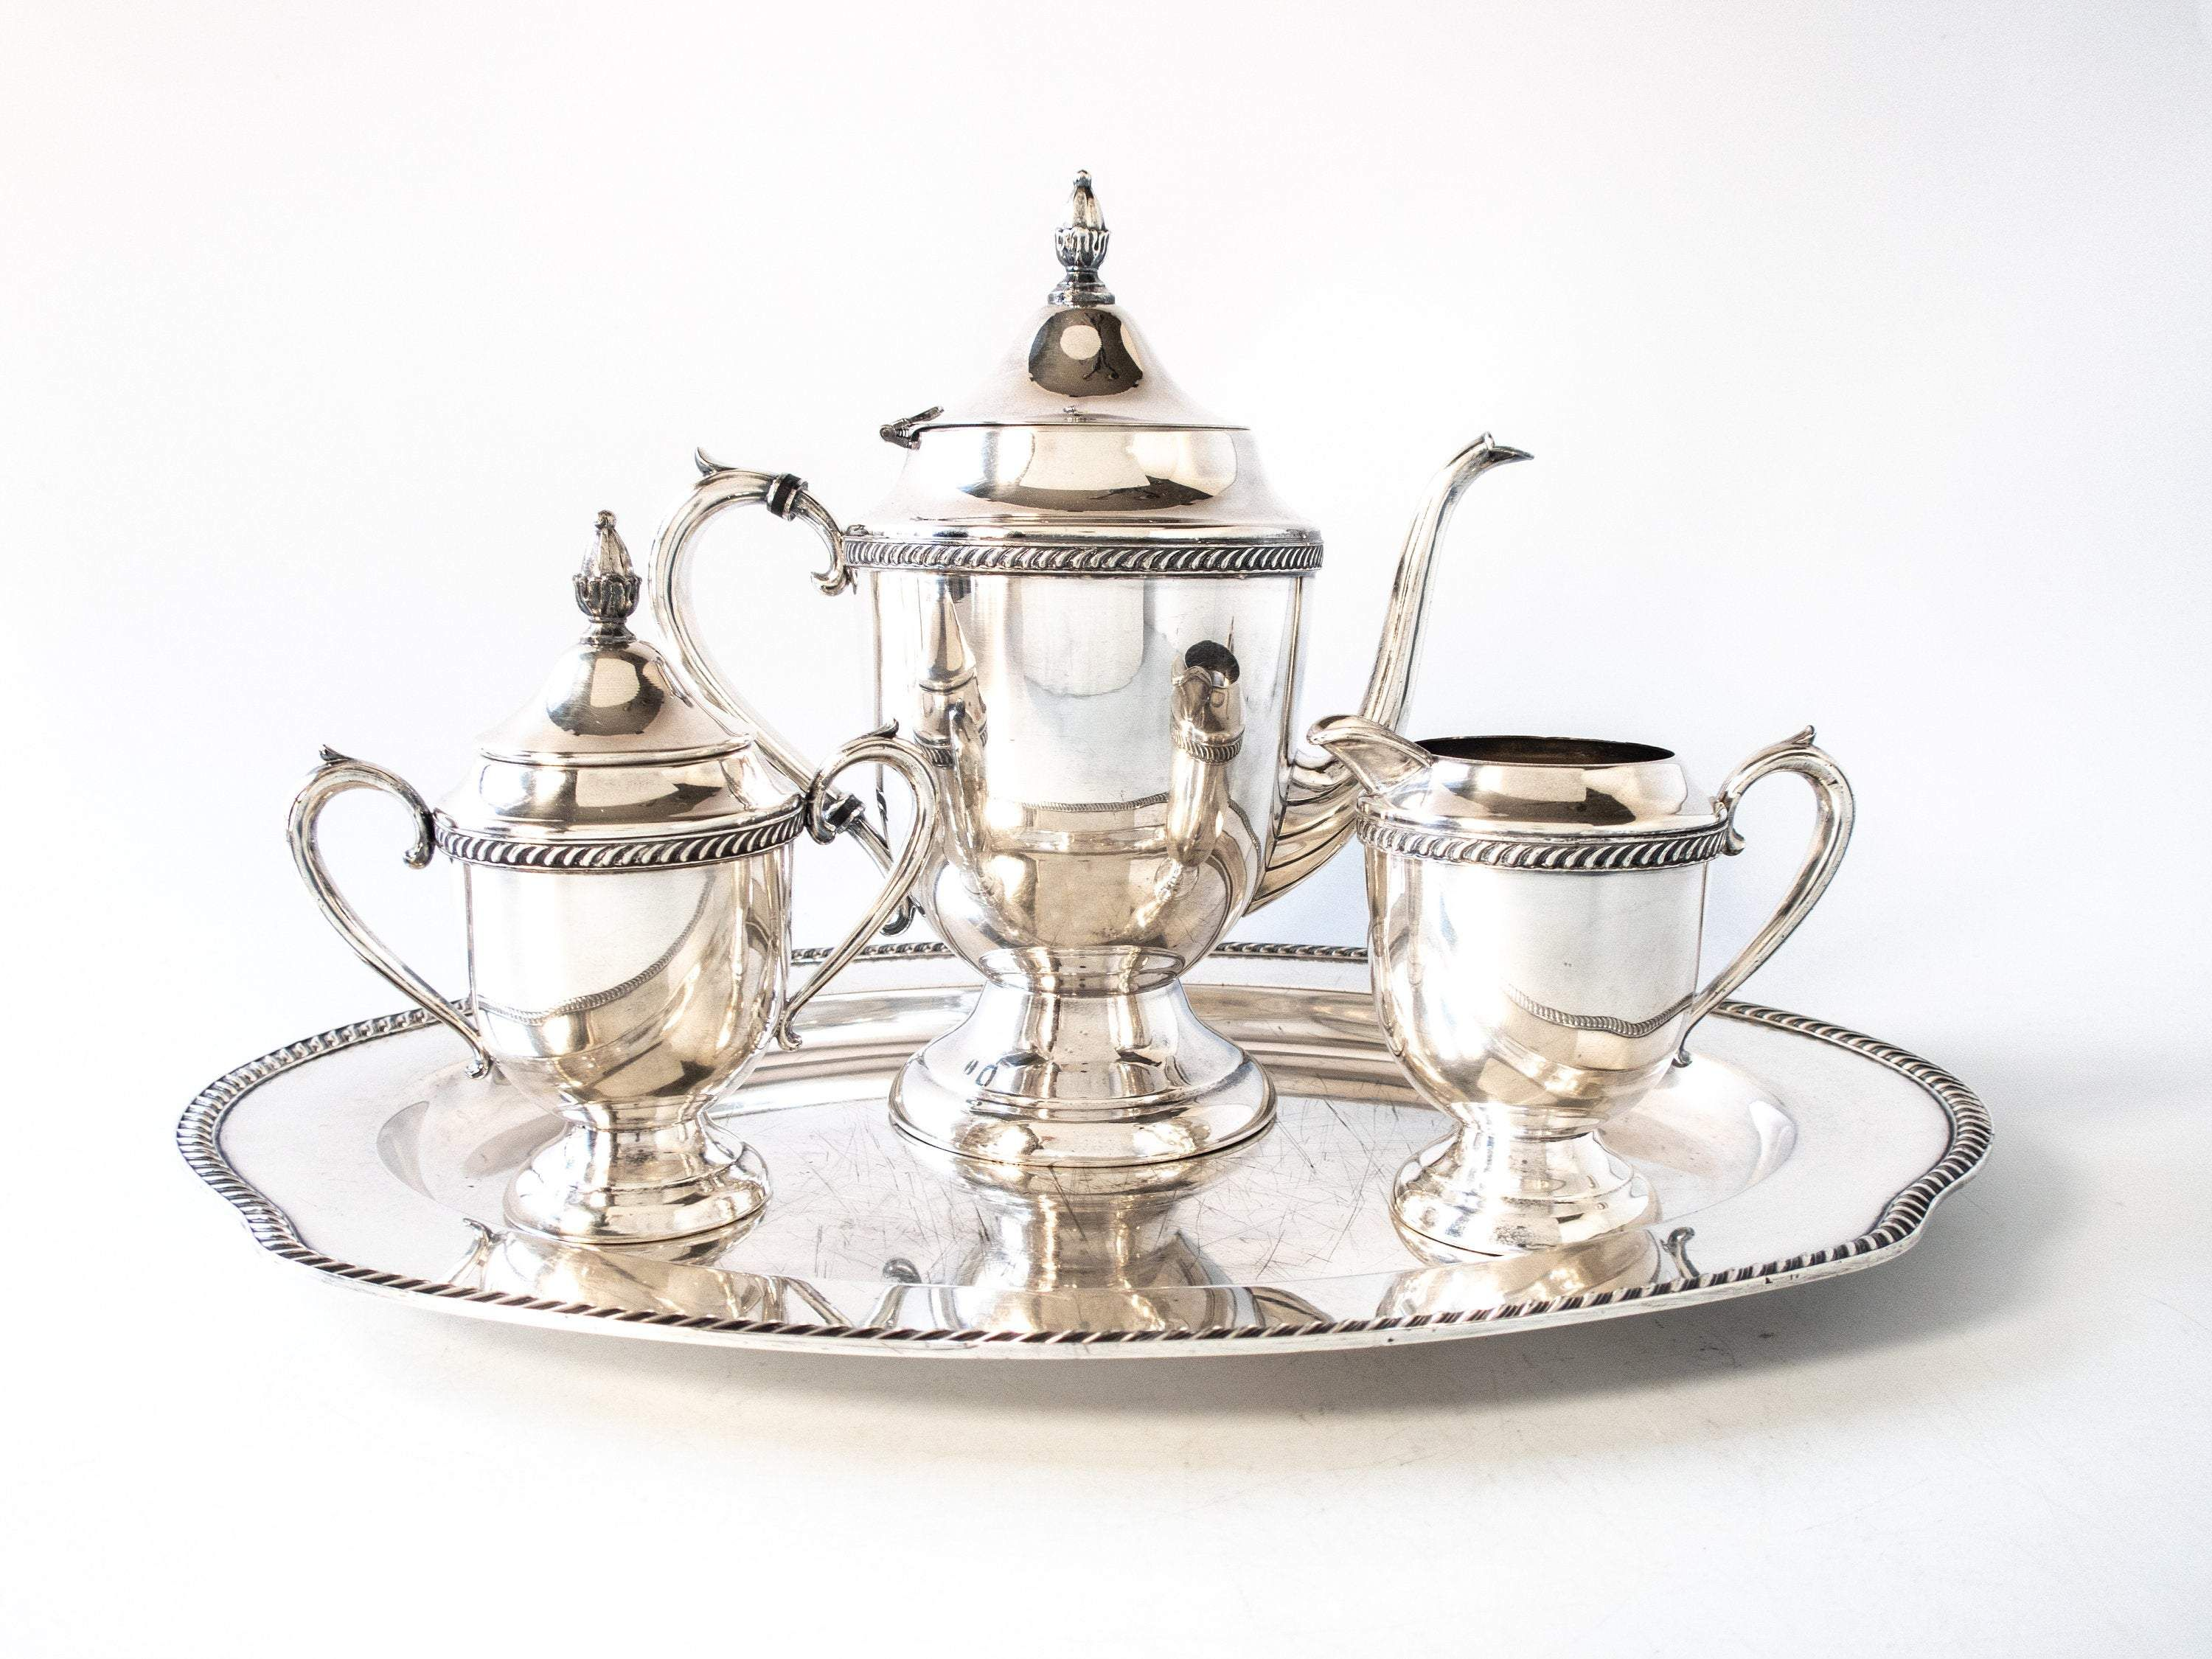 Antique Silverplate Tea Set With Tray Art Deco Silver Plated Tea Set Antique Tea Sets Tea Set